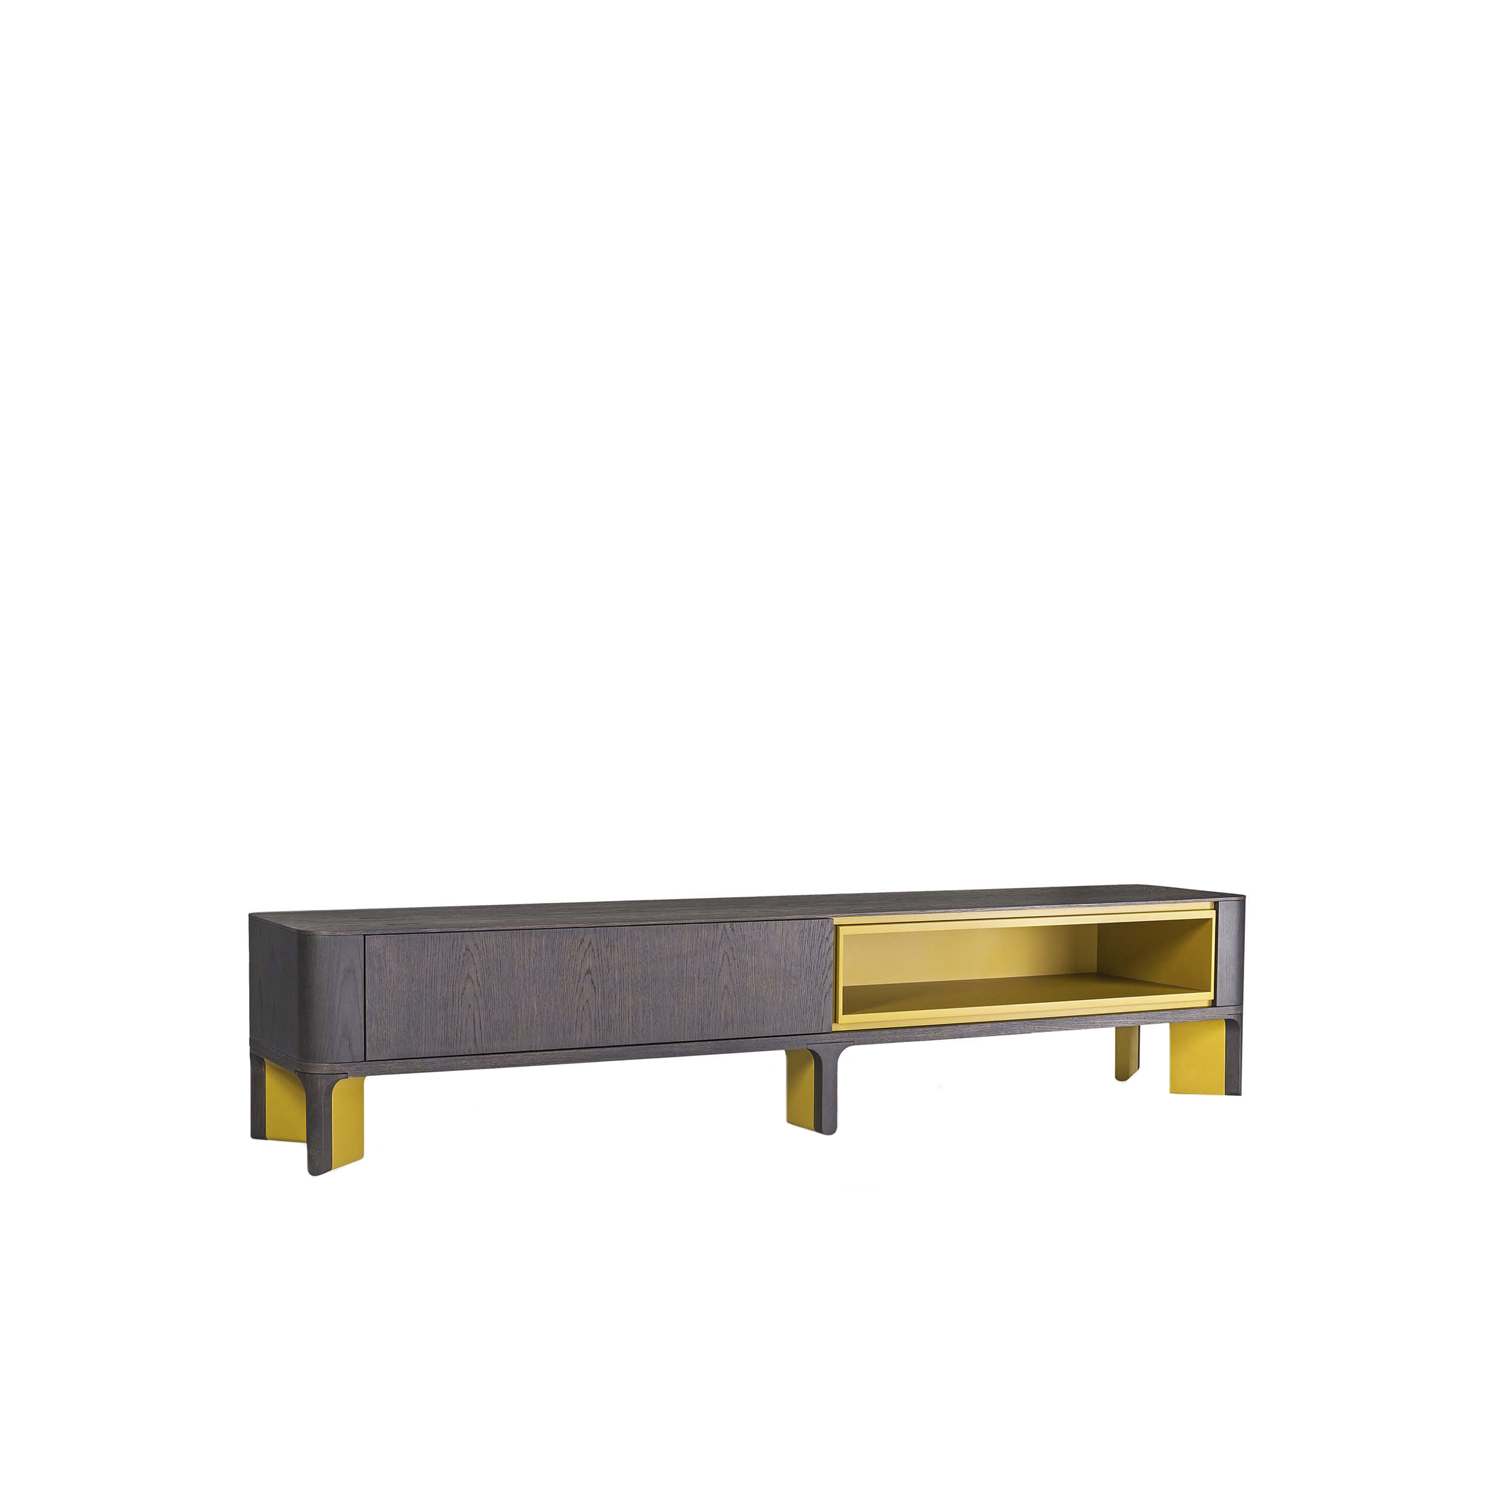 Acro-Bat 005 Sideboard - T.V. unit in various sizes – ground sideboard with open space and one push-soft closing drawer in wood and lacquer - base in two sections in wood and lacquer or total lacquered. Extra open space and internal drawer always lacquered as base.